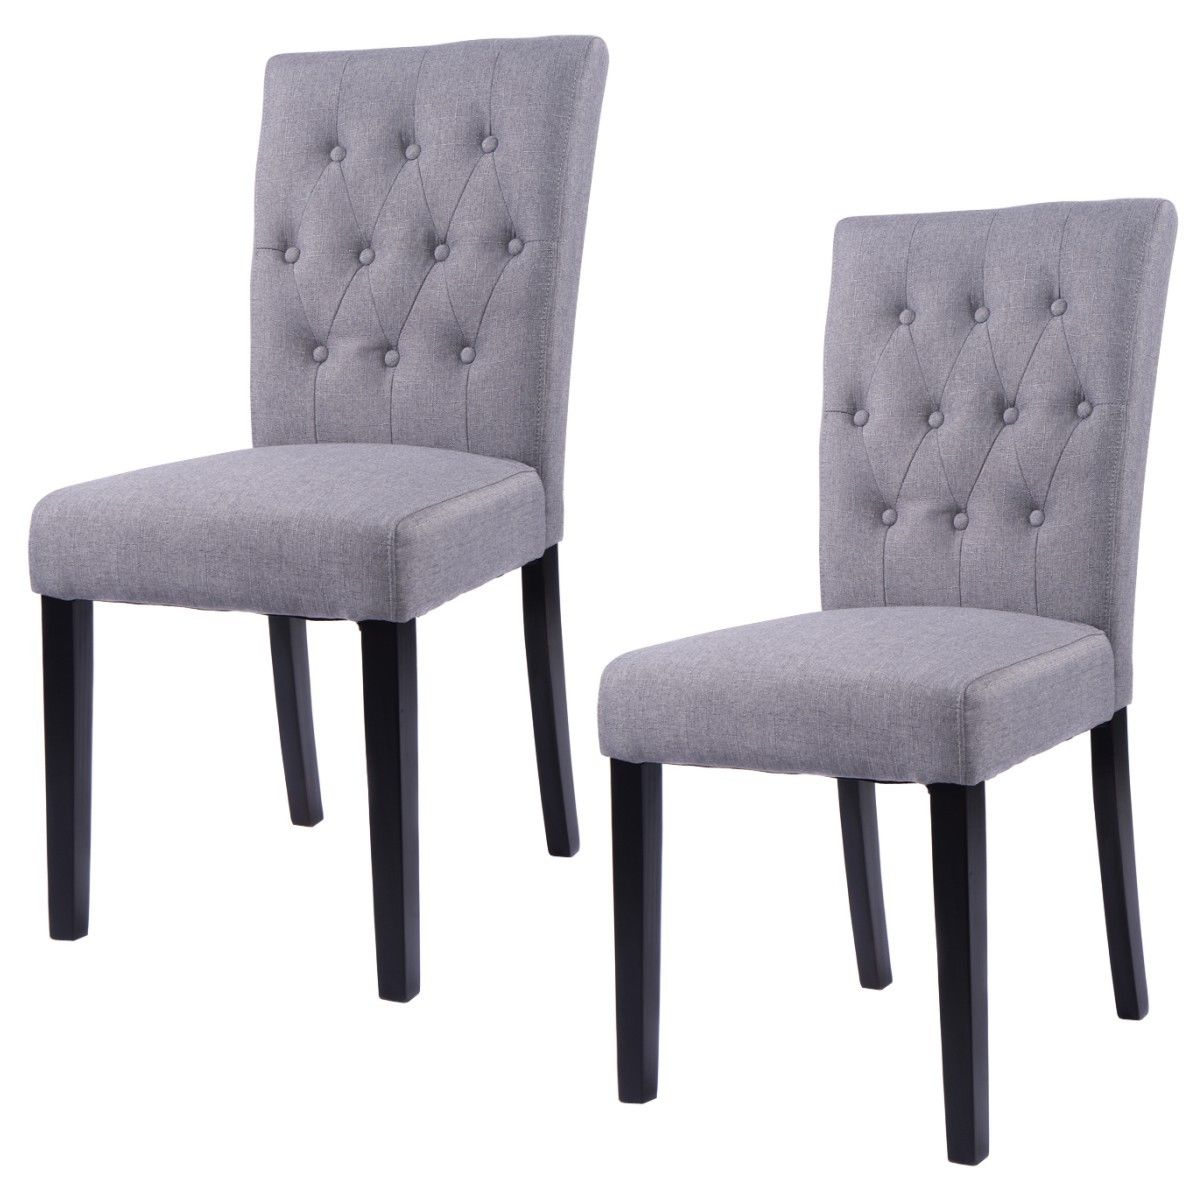 Costway Set of 2 Fabric Dining Chair Armless Chair Home